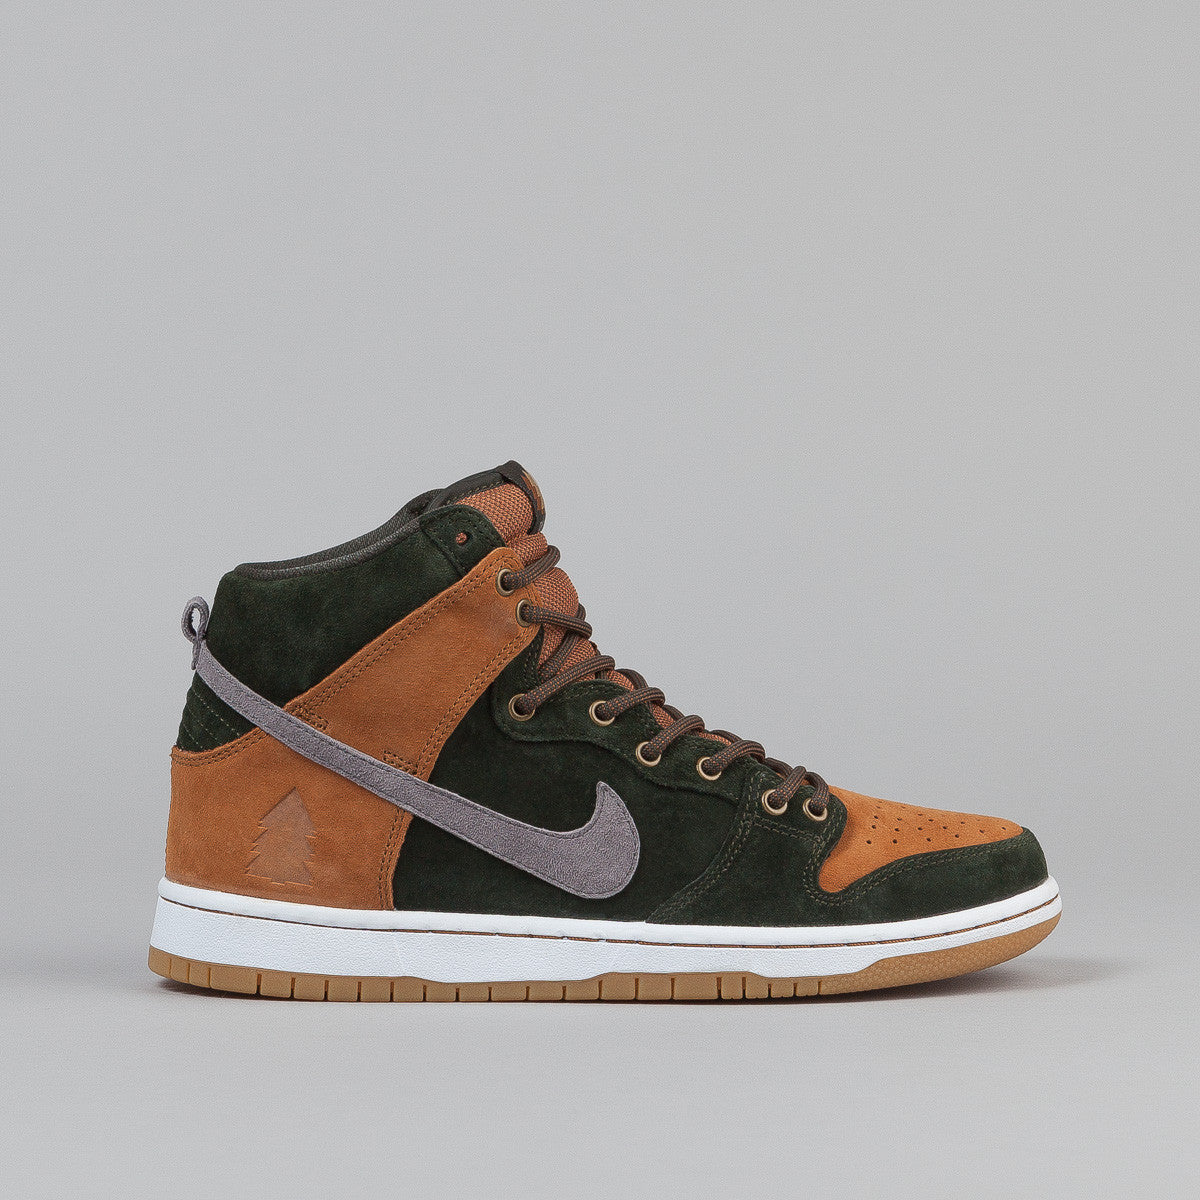 Nike SB Dunk High Premium Home Grown QS